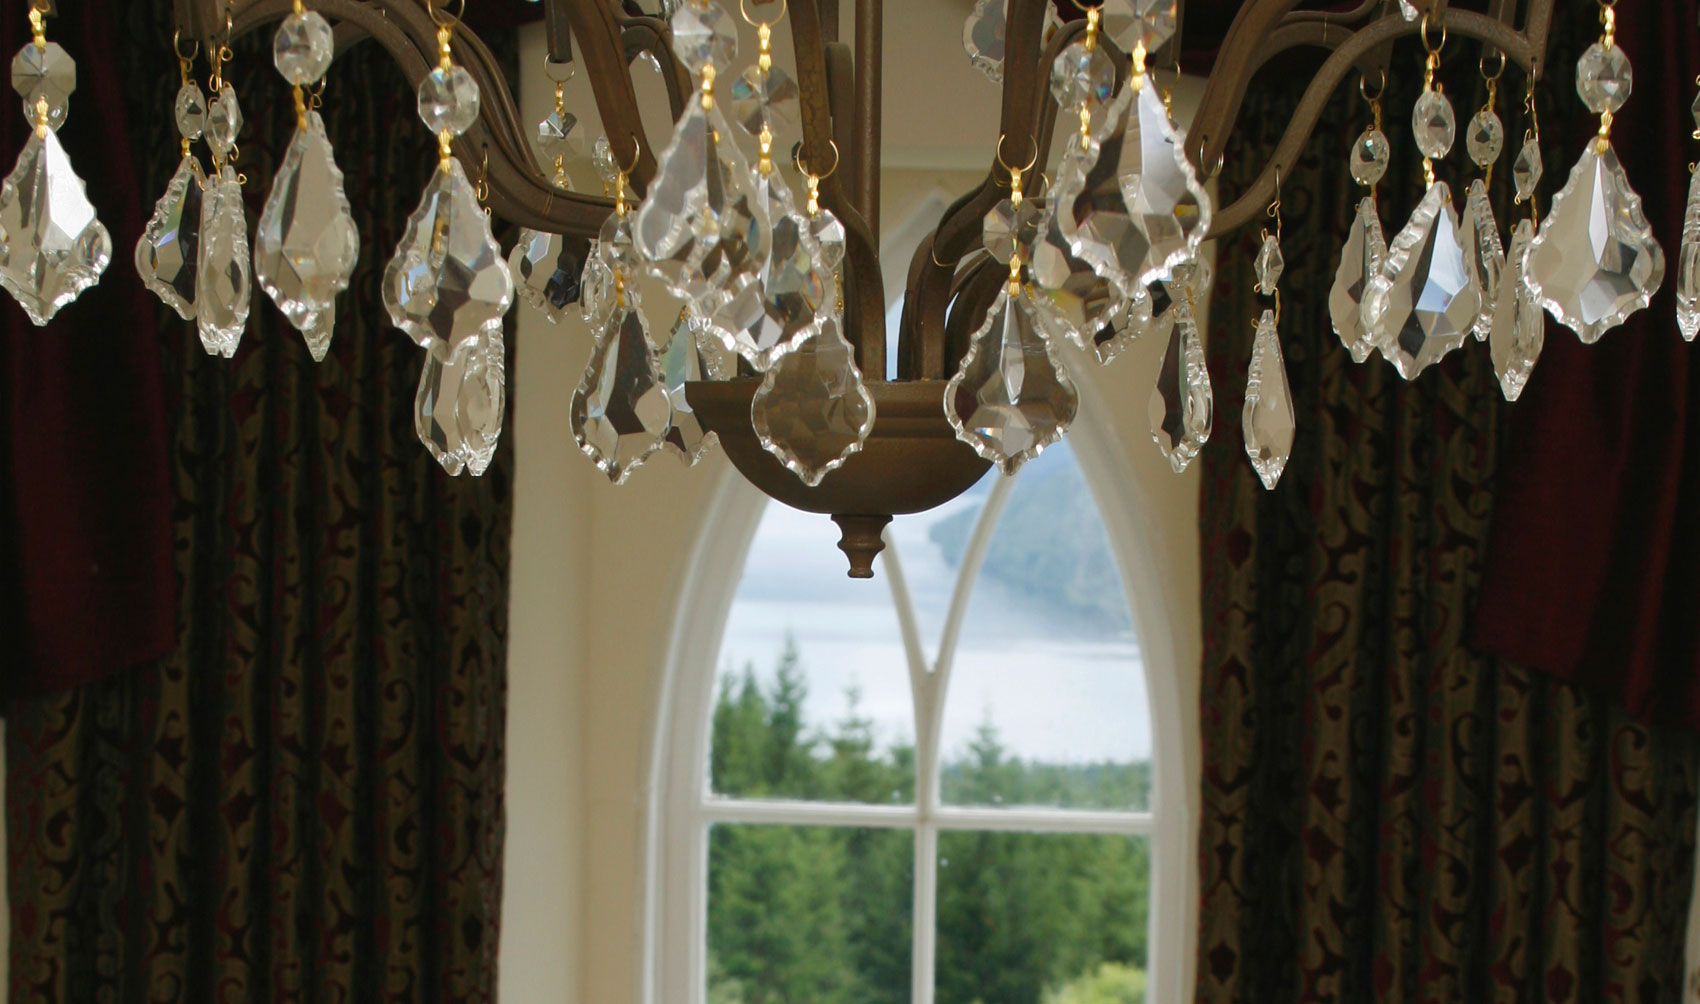 The White Tower Chandelier